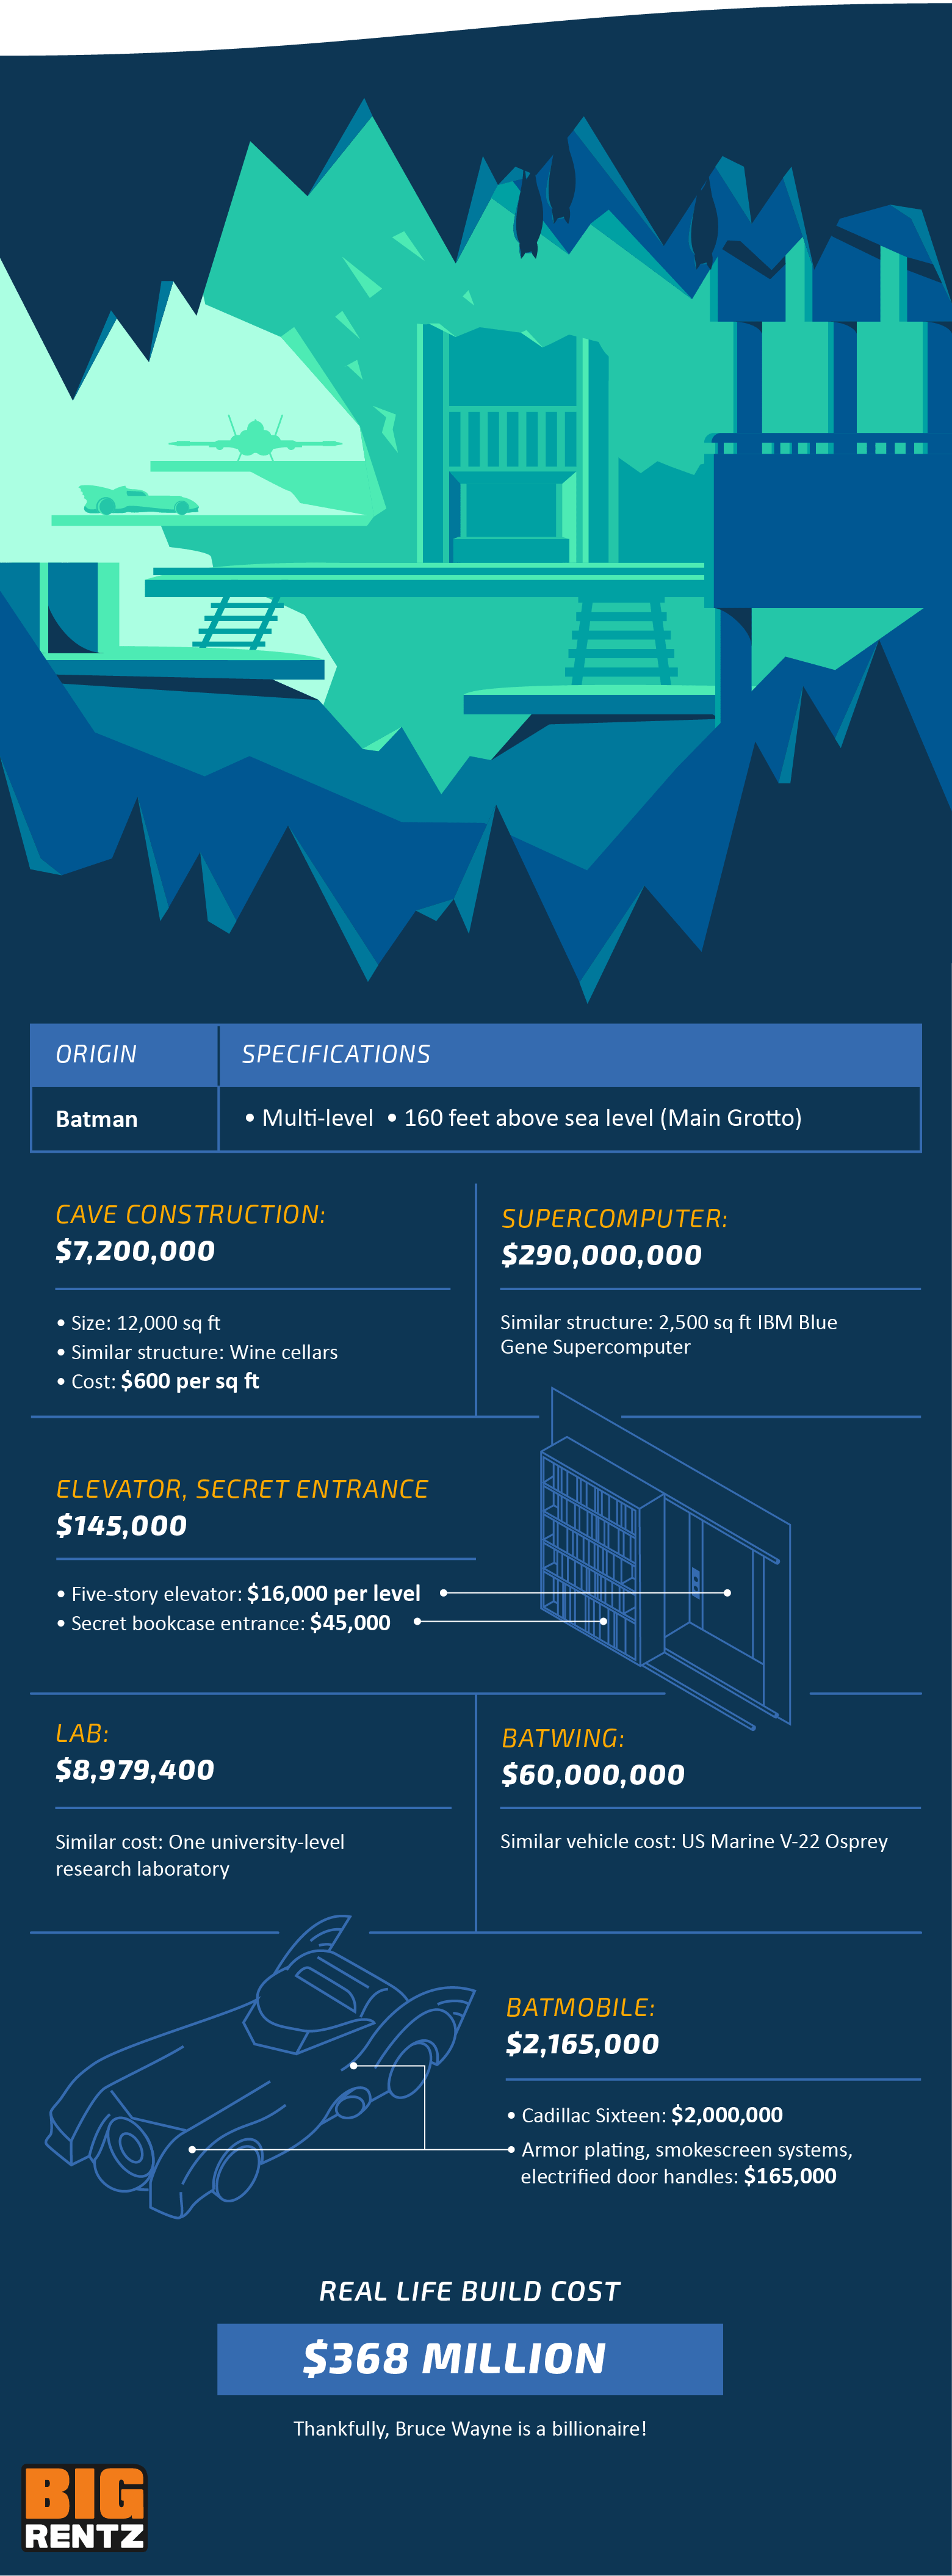 A breakdown of the costs of building the Bat Cave, which is estimated to be $368 million.